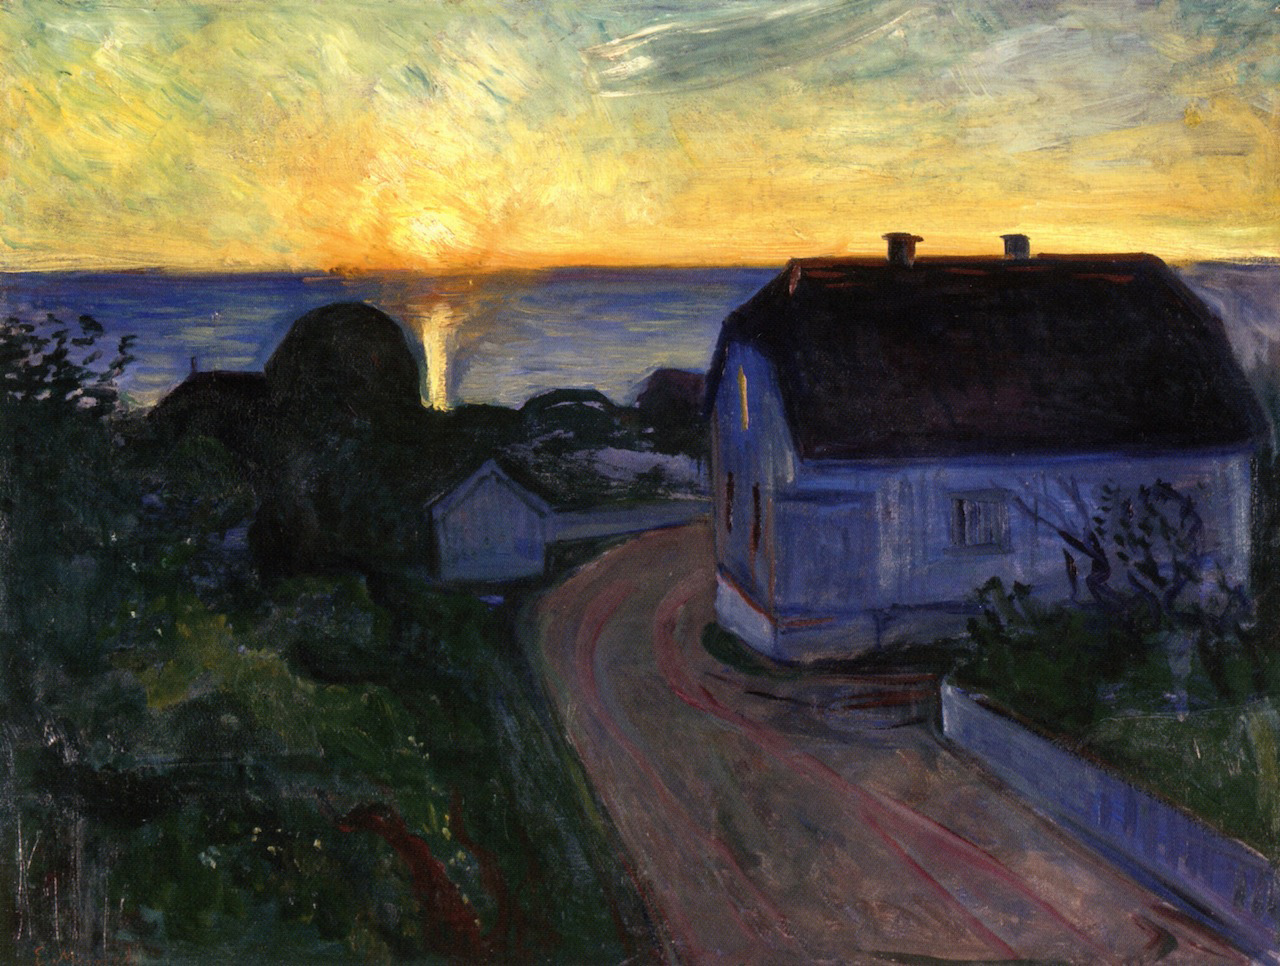 munch-sunrise-in-åsgårdstrand-display_image.jpg